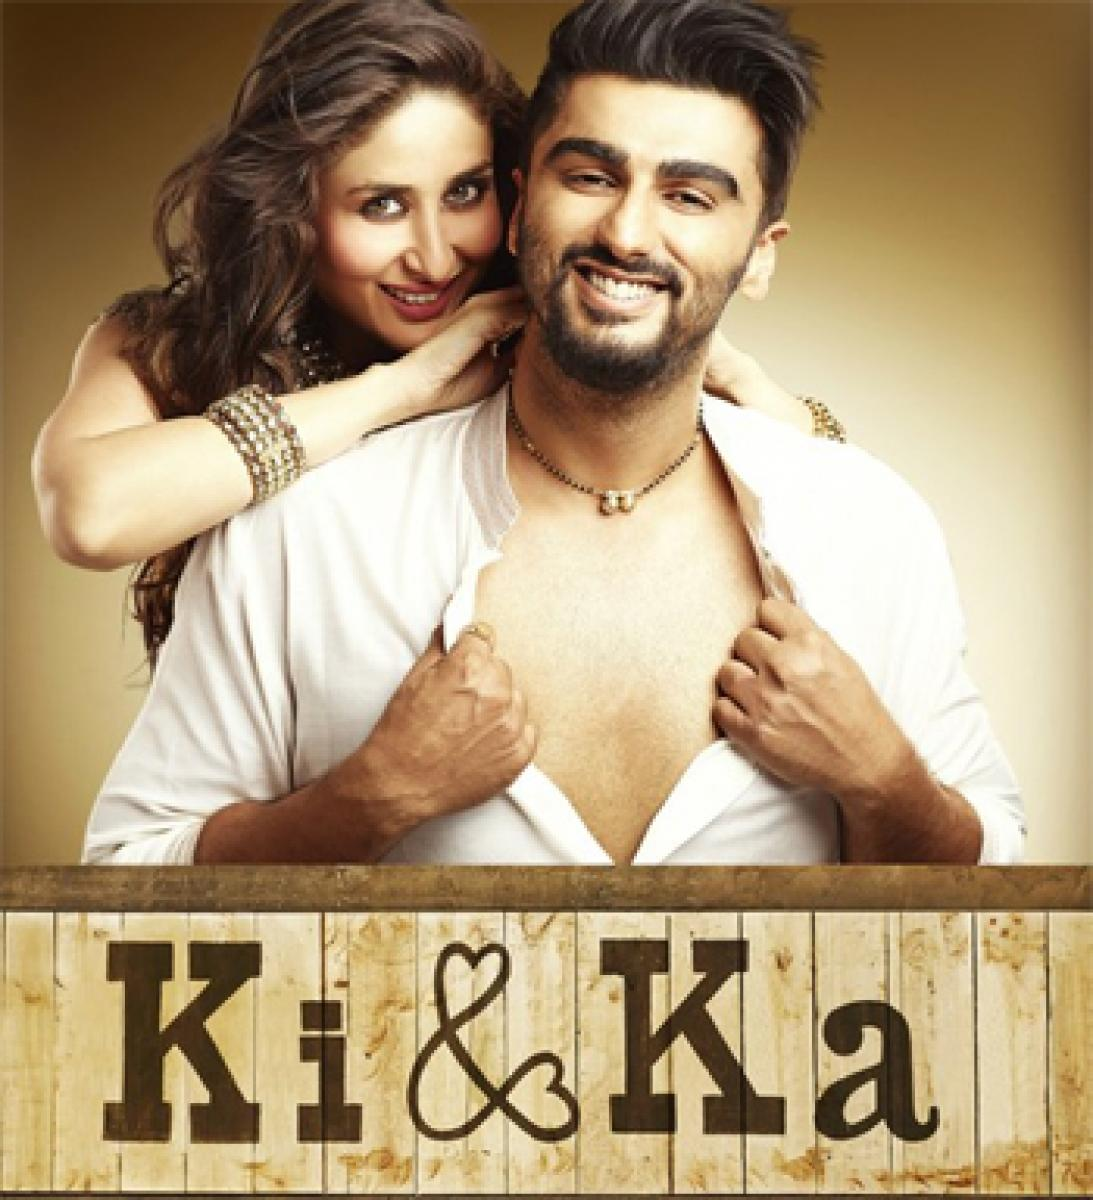 Ki & Ka will appeal to urban audience and worth a watch